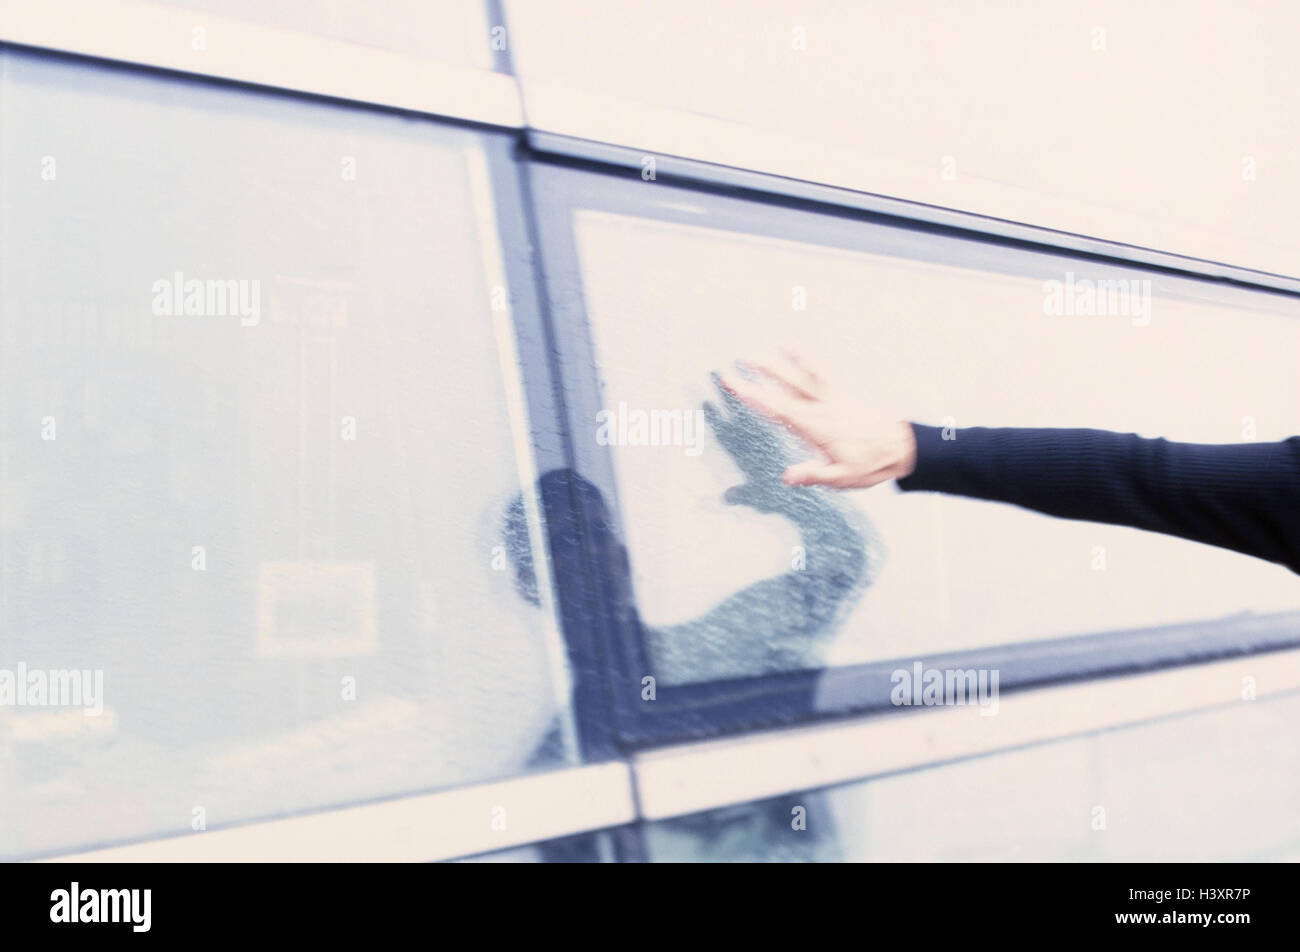 Buildings, glass front, man, hand, touch, mirroring, detail, outside, person, window pane, windowpane, wet, feel, Stock Photo